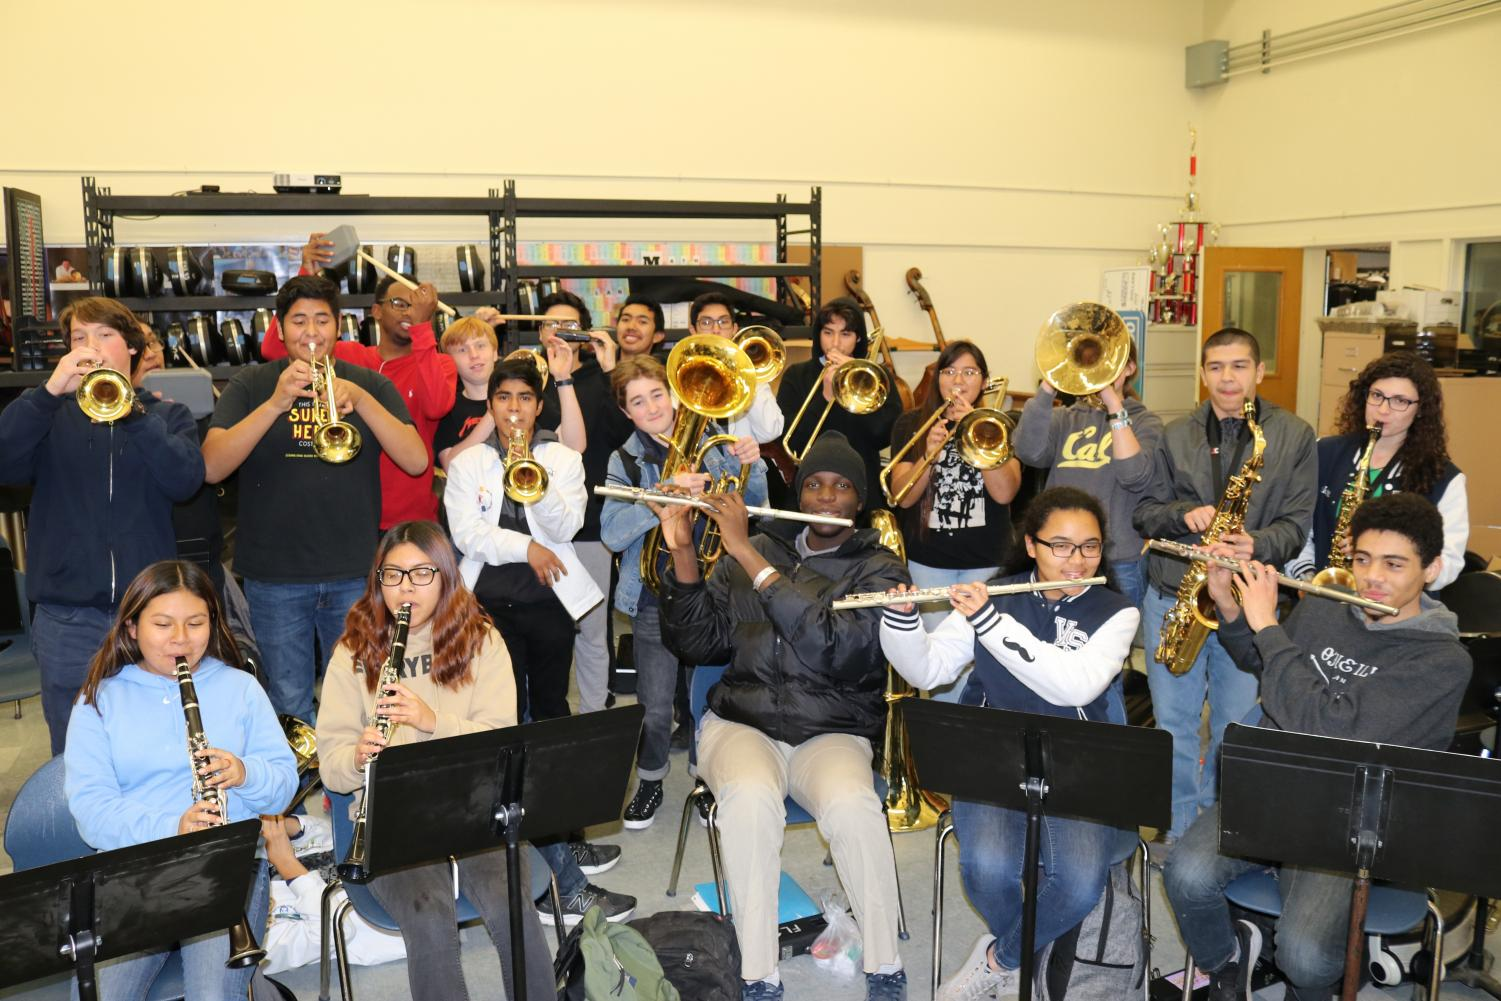 The band rehearses for their Valentine's Day fundraiser.